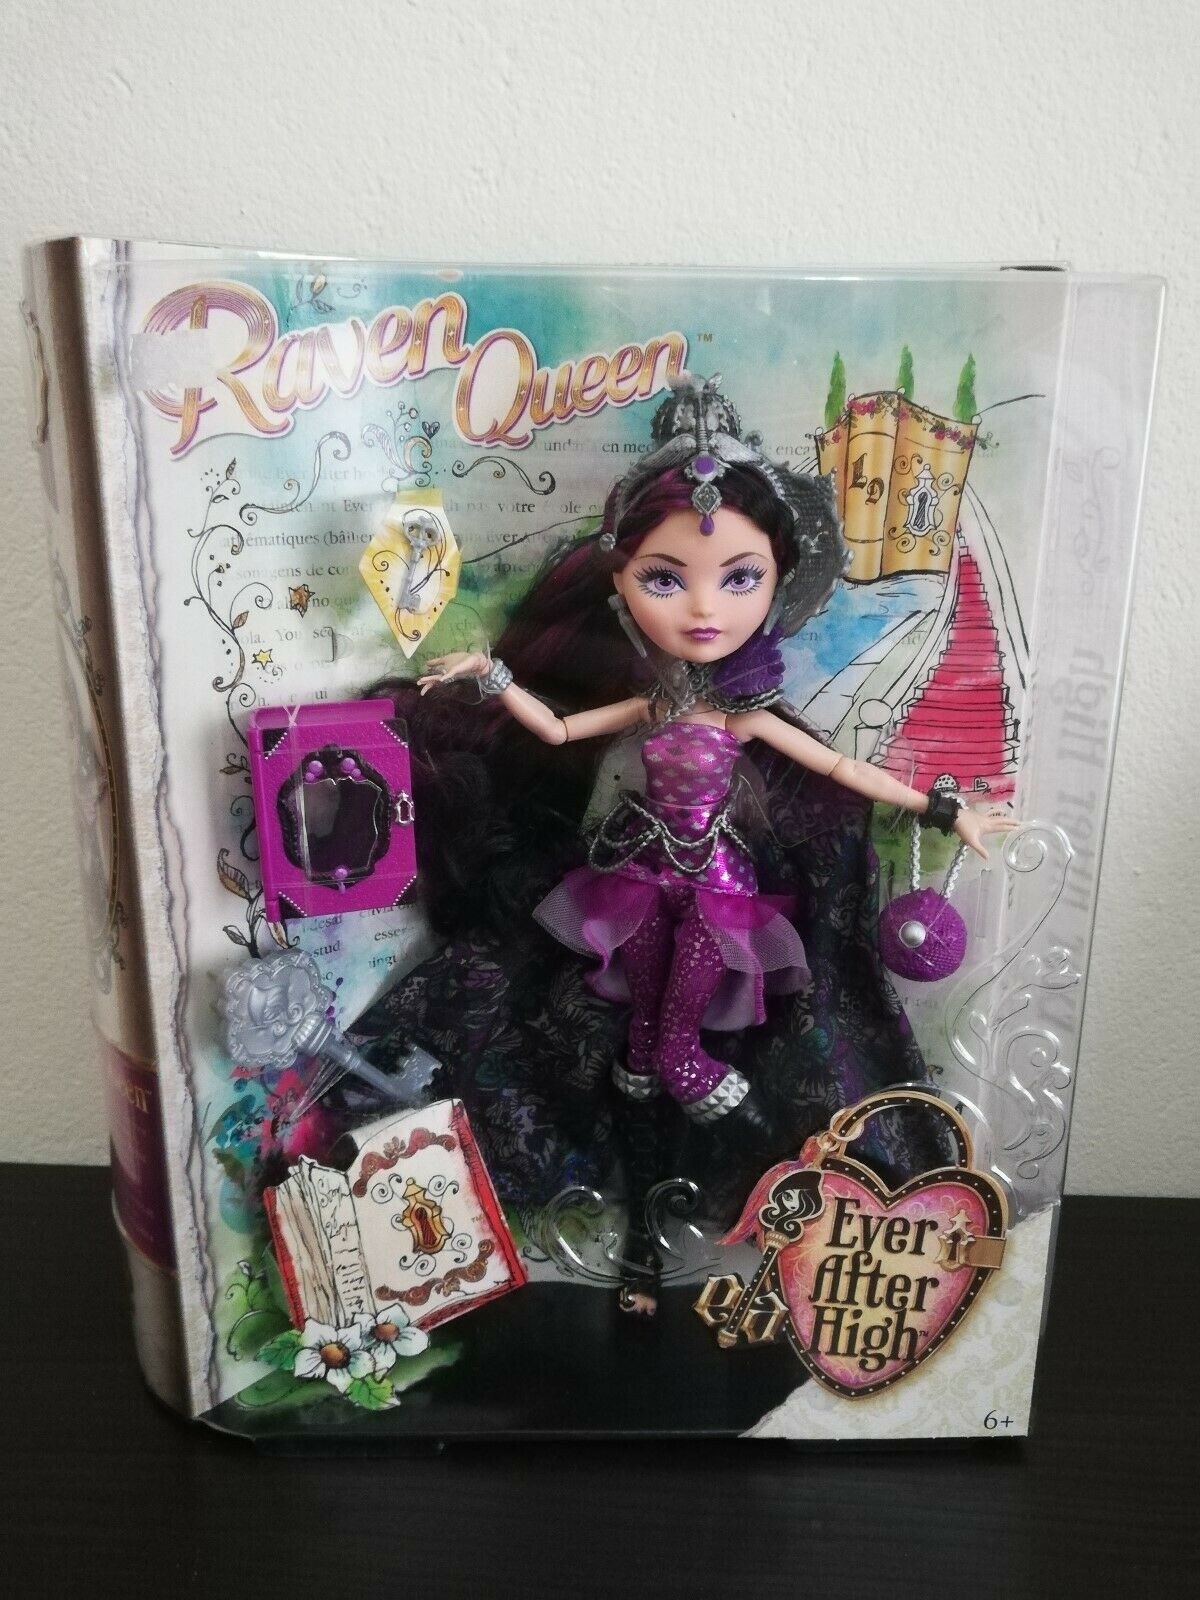 Ever After High 'Legacy Day' Raven Queen Daughter of The Evil Queen HTF New